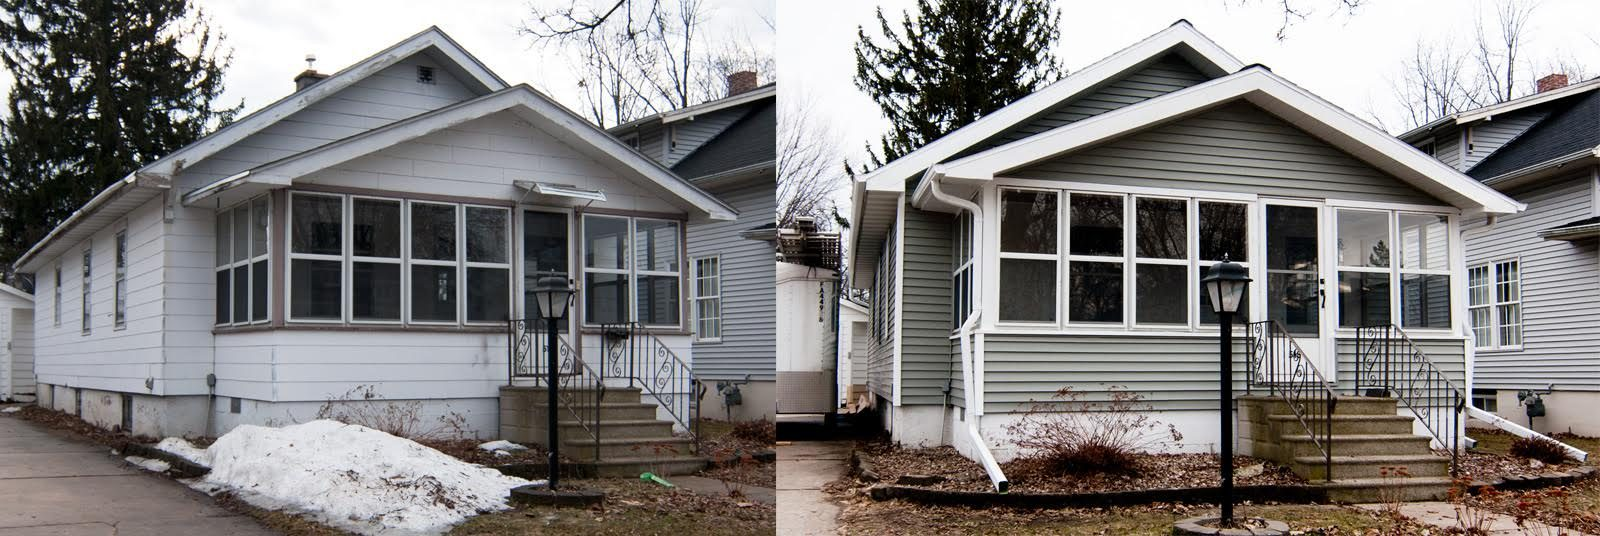 Fixer upper home on the west side of Green Bay, WI